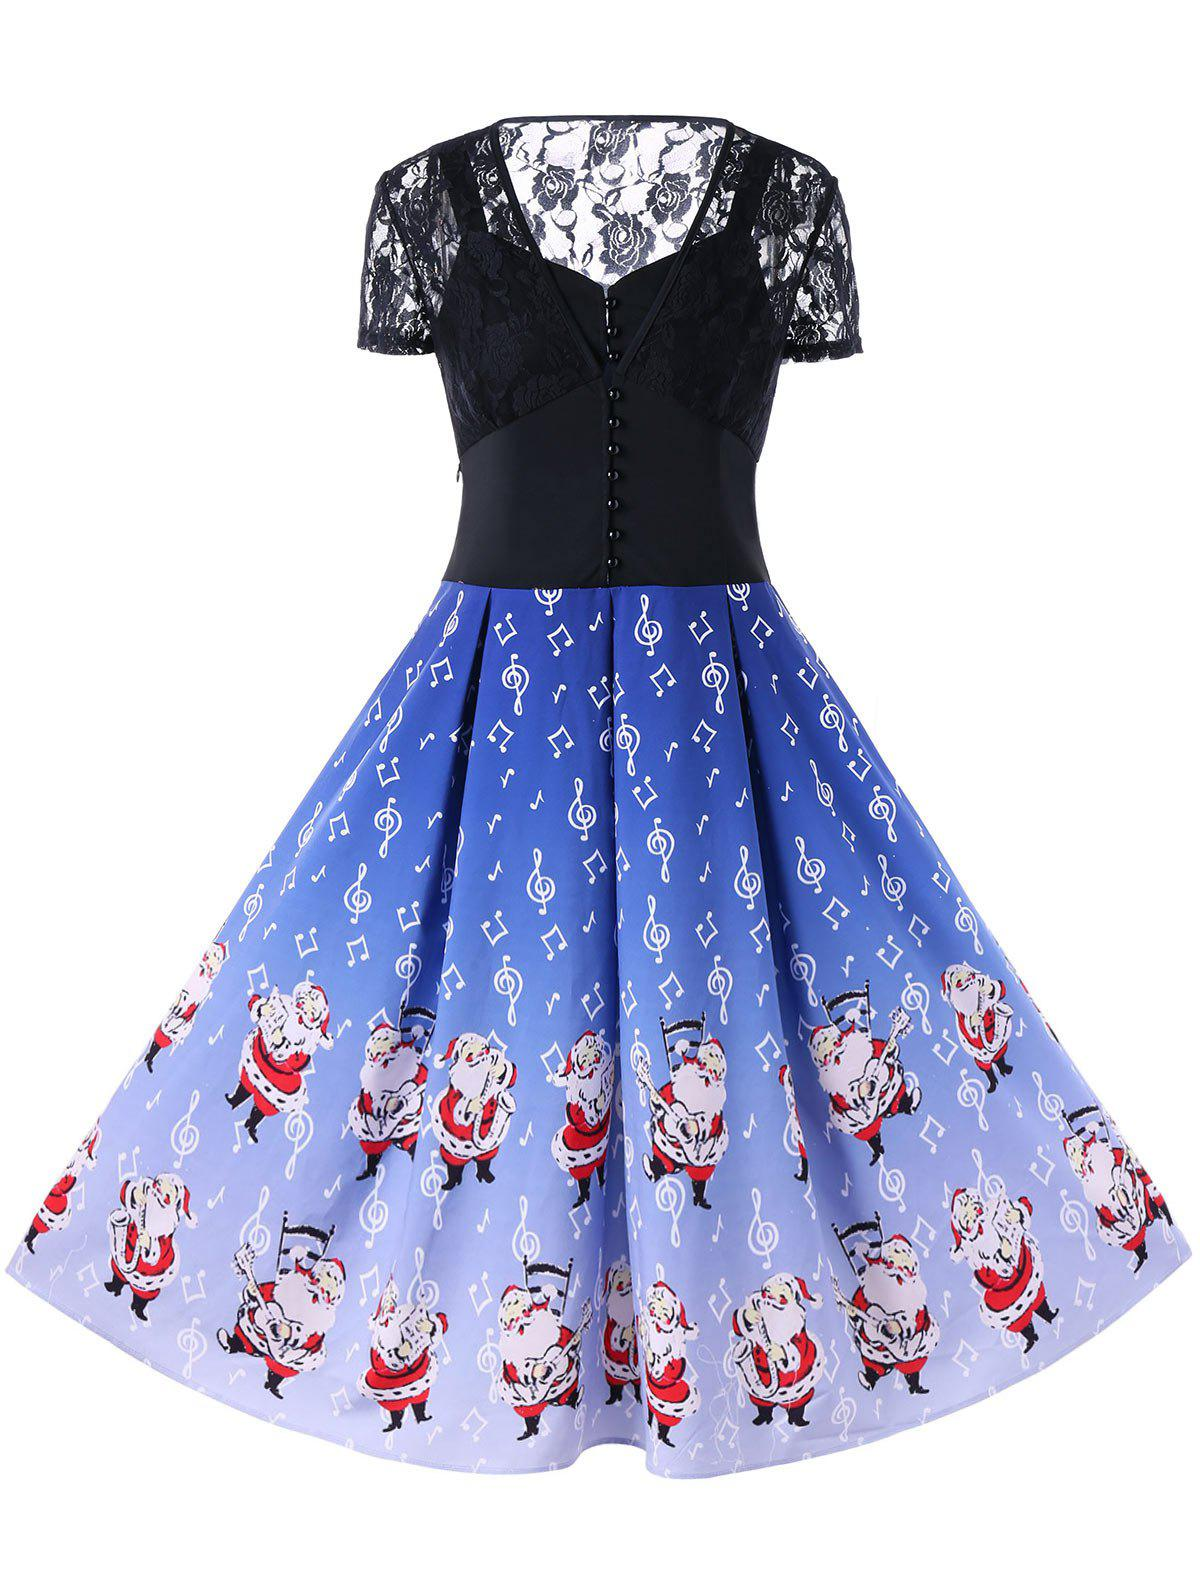 Christmas Sheer Music Notes Swing DressWOMEN<br><br>Size: L; Color: BLUE; Style: Vintage; Material: Polyester; Silhouette: A-Line; Dresses Length: Mid-Calf; Neckline: V-Neck; Sleeve Length: Short Sleeves; Pattern Type: Character; With Belt: No; Season: Fall,Spring; Weight: 0.3800kg; Package Contents: 1 x Dress;